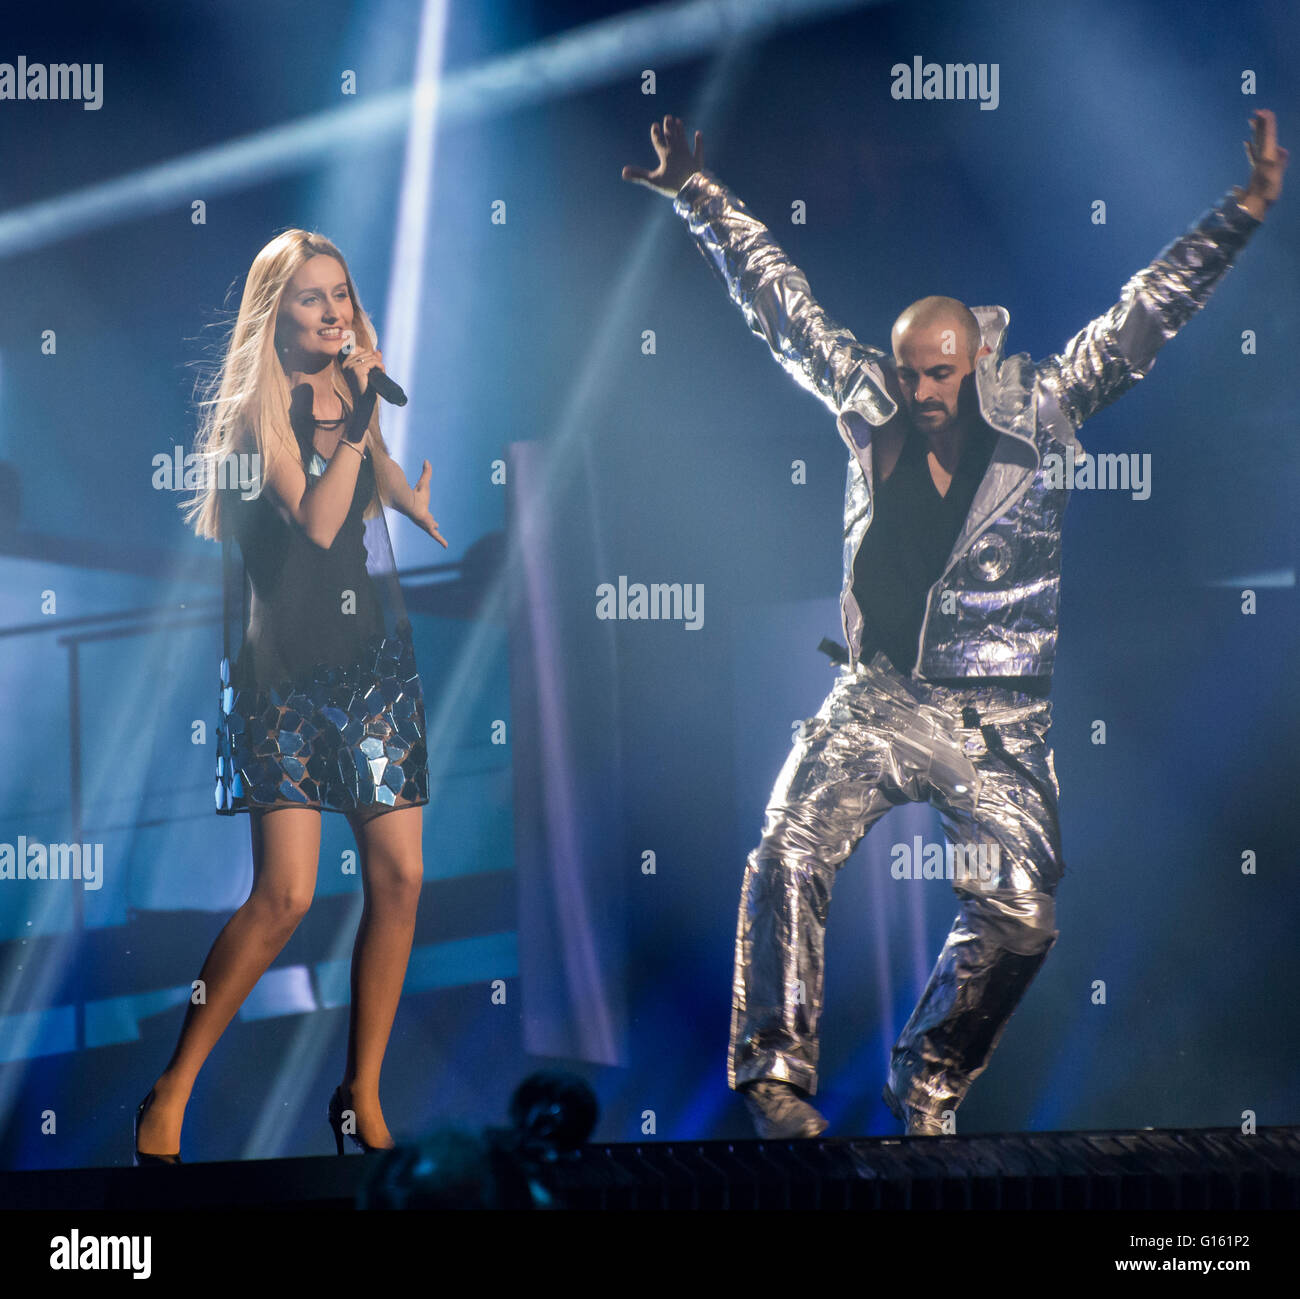 Stockholm, Sweden. 9th May. Lidia Isac performing 'Falling Stars' for Moldova. Stock Photo